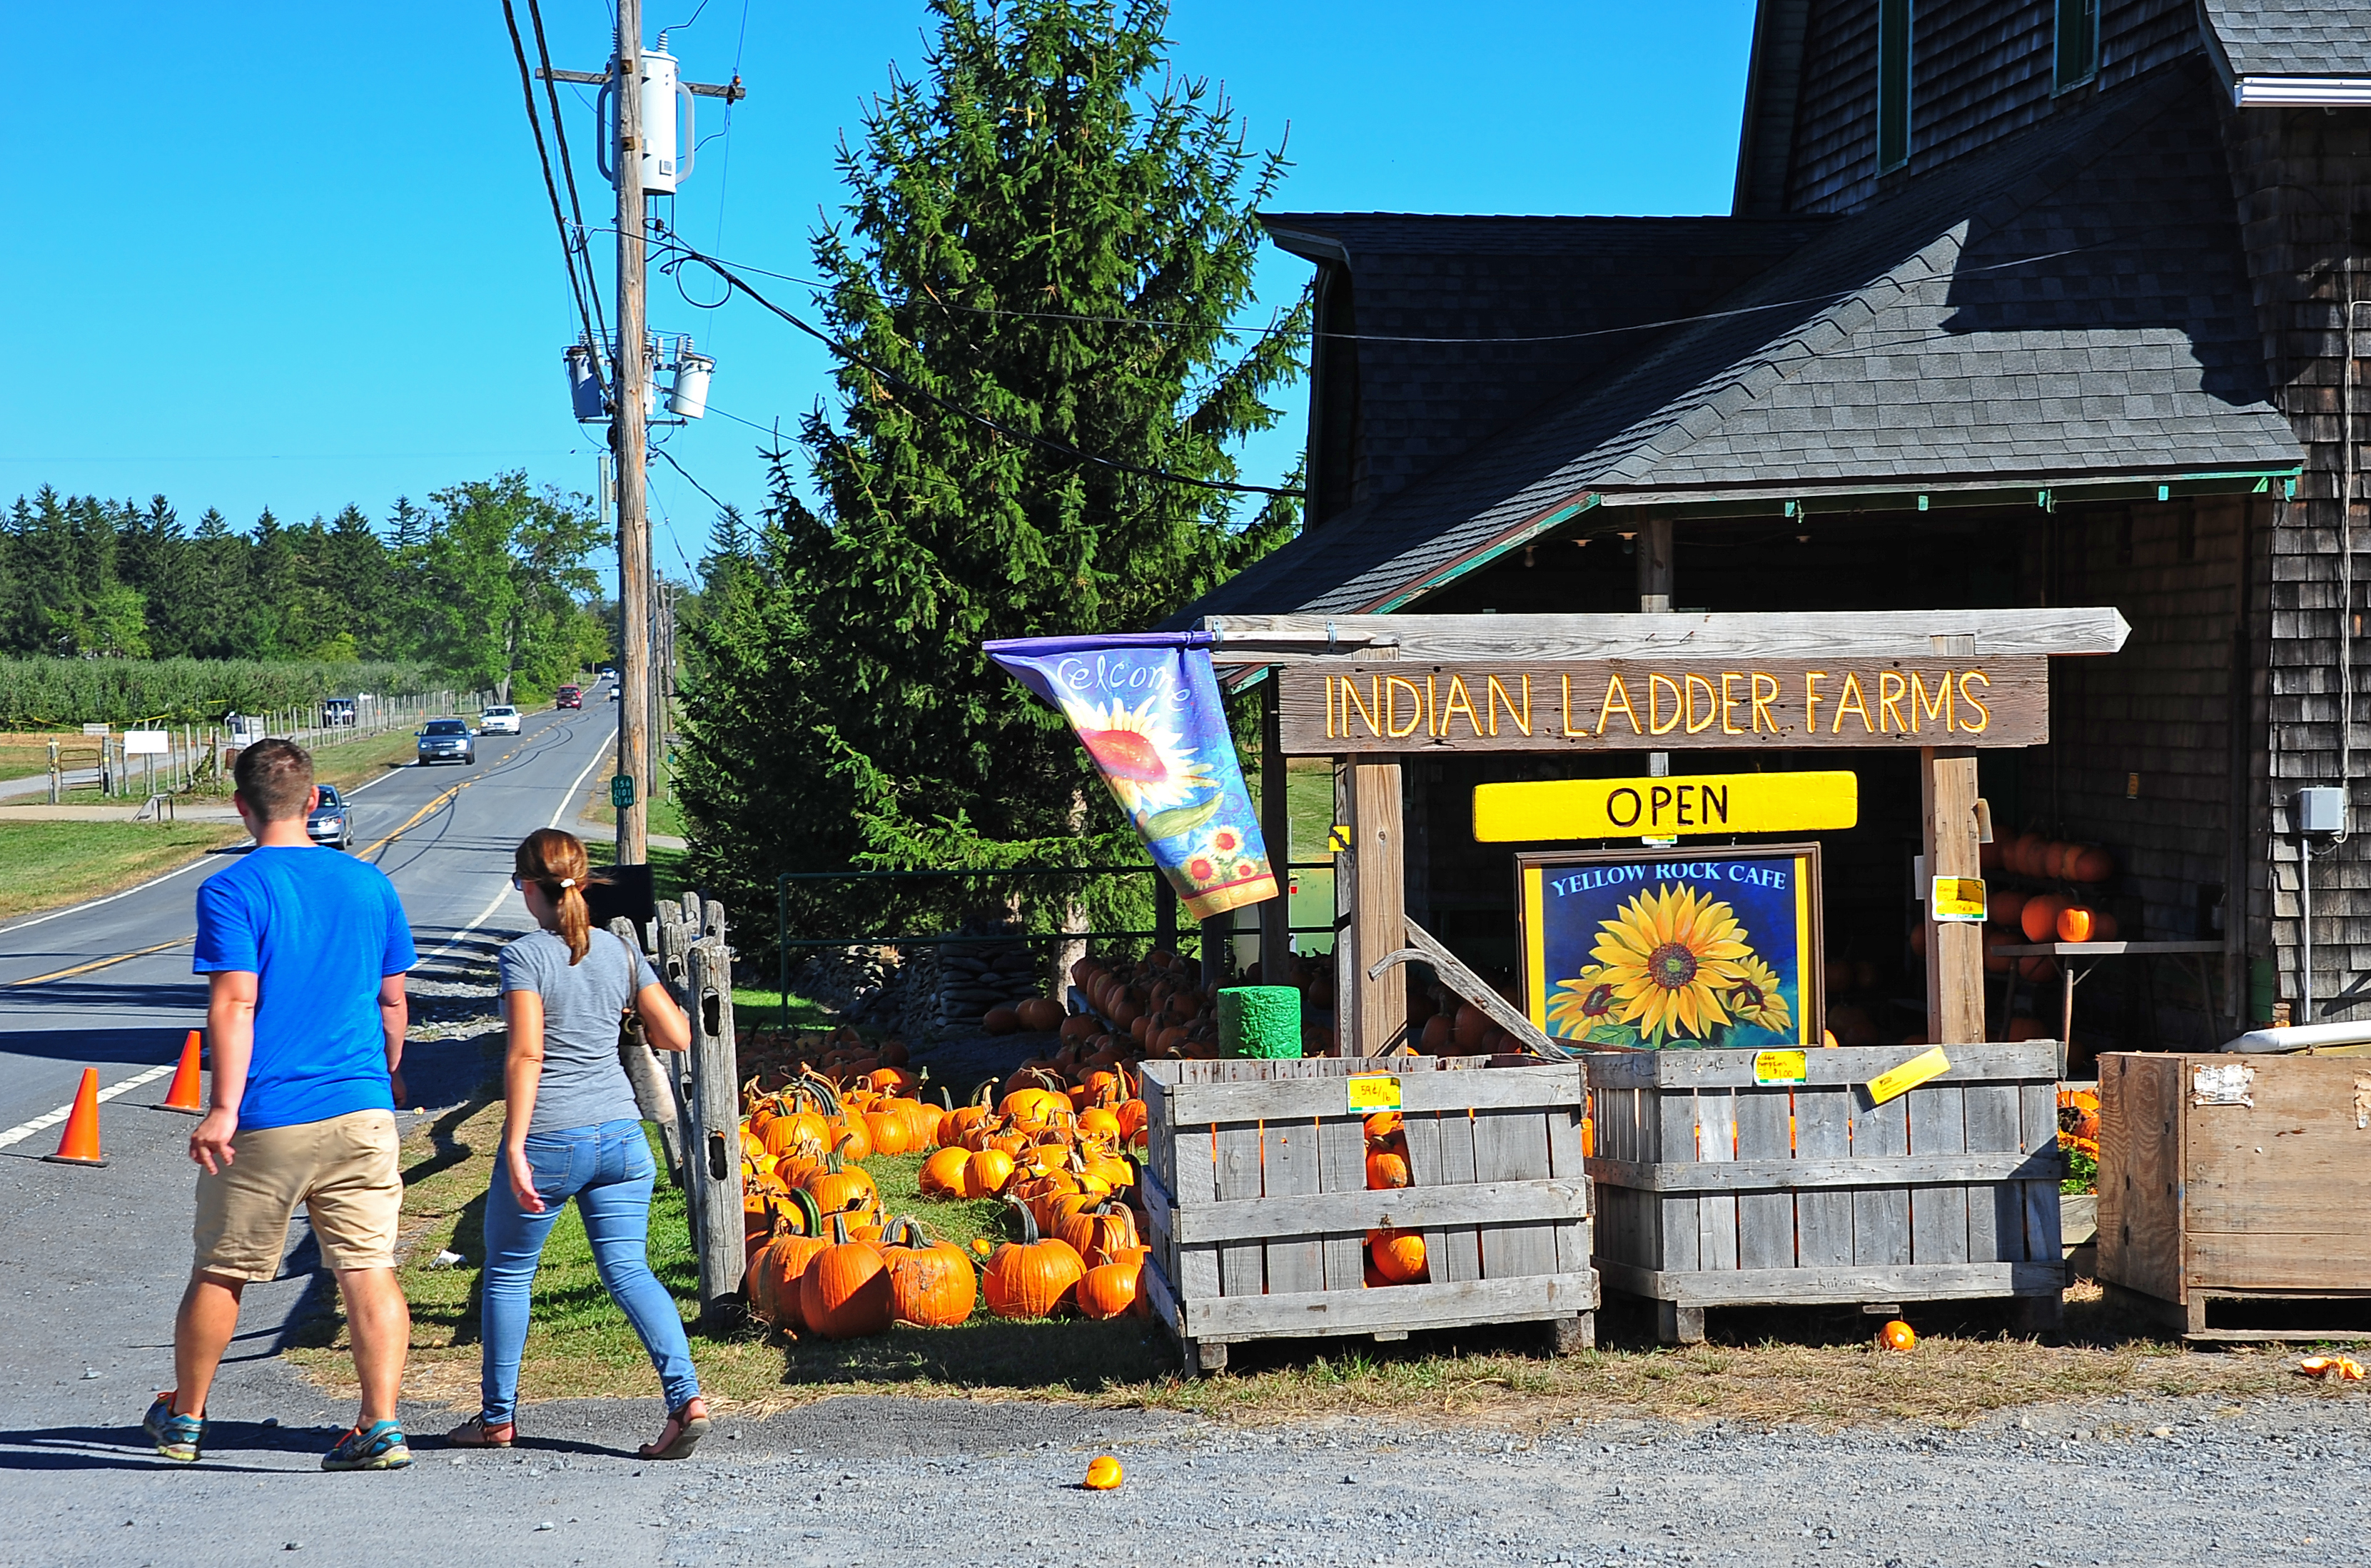 Once a farm for dairy cows, Indian Ladder today offers a farm store, hay rides, the Yellow Rock Café restaurant, a baby animal petting farm, the Barn School summer camp, a wedding locale for rent, and the Helderberg Farmer's Market.